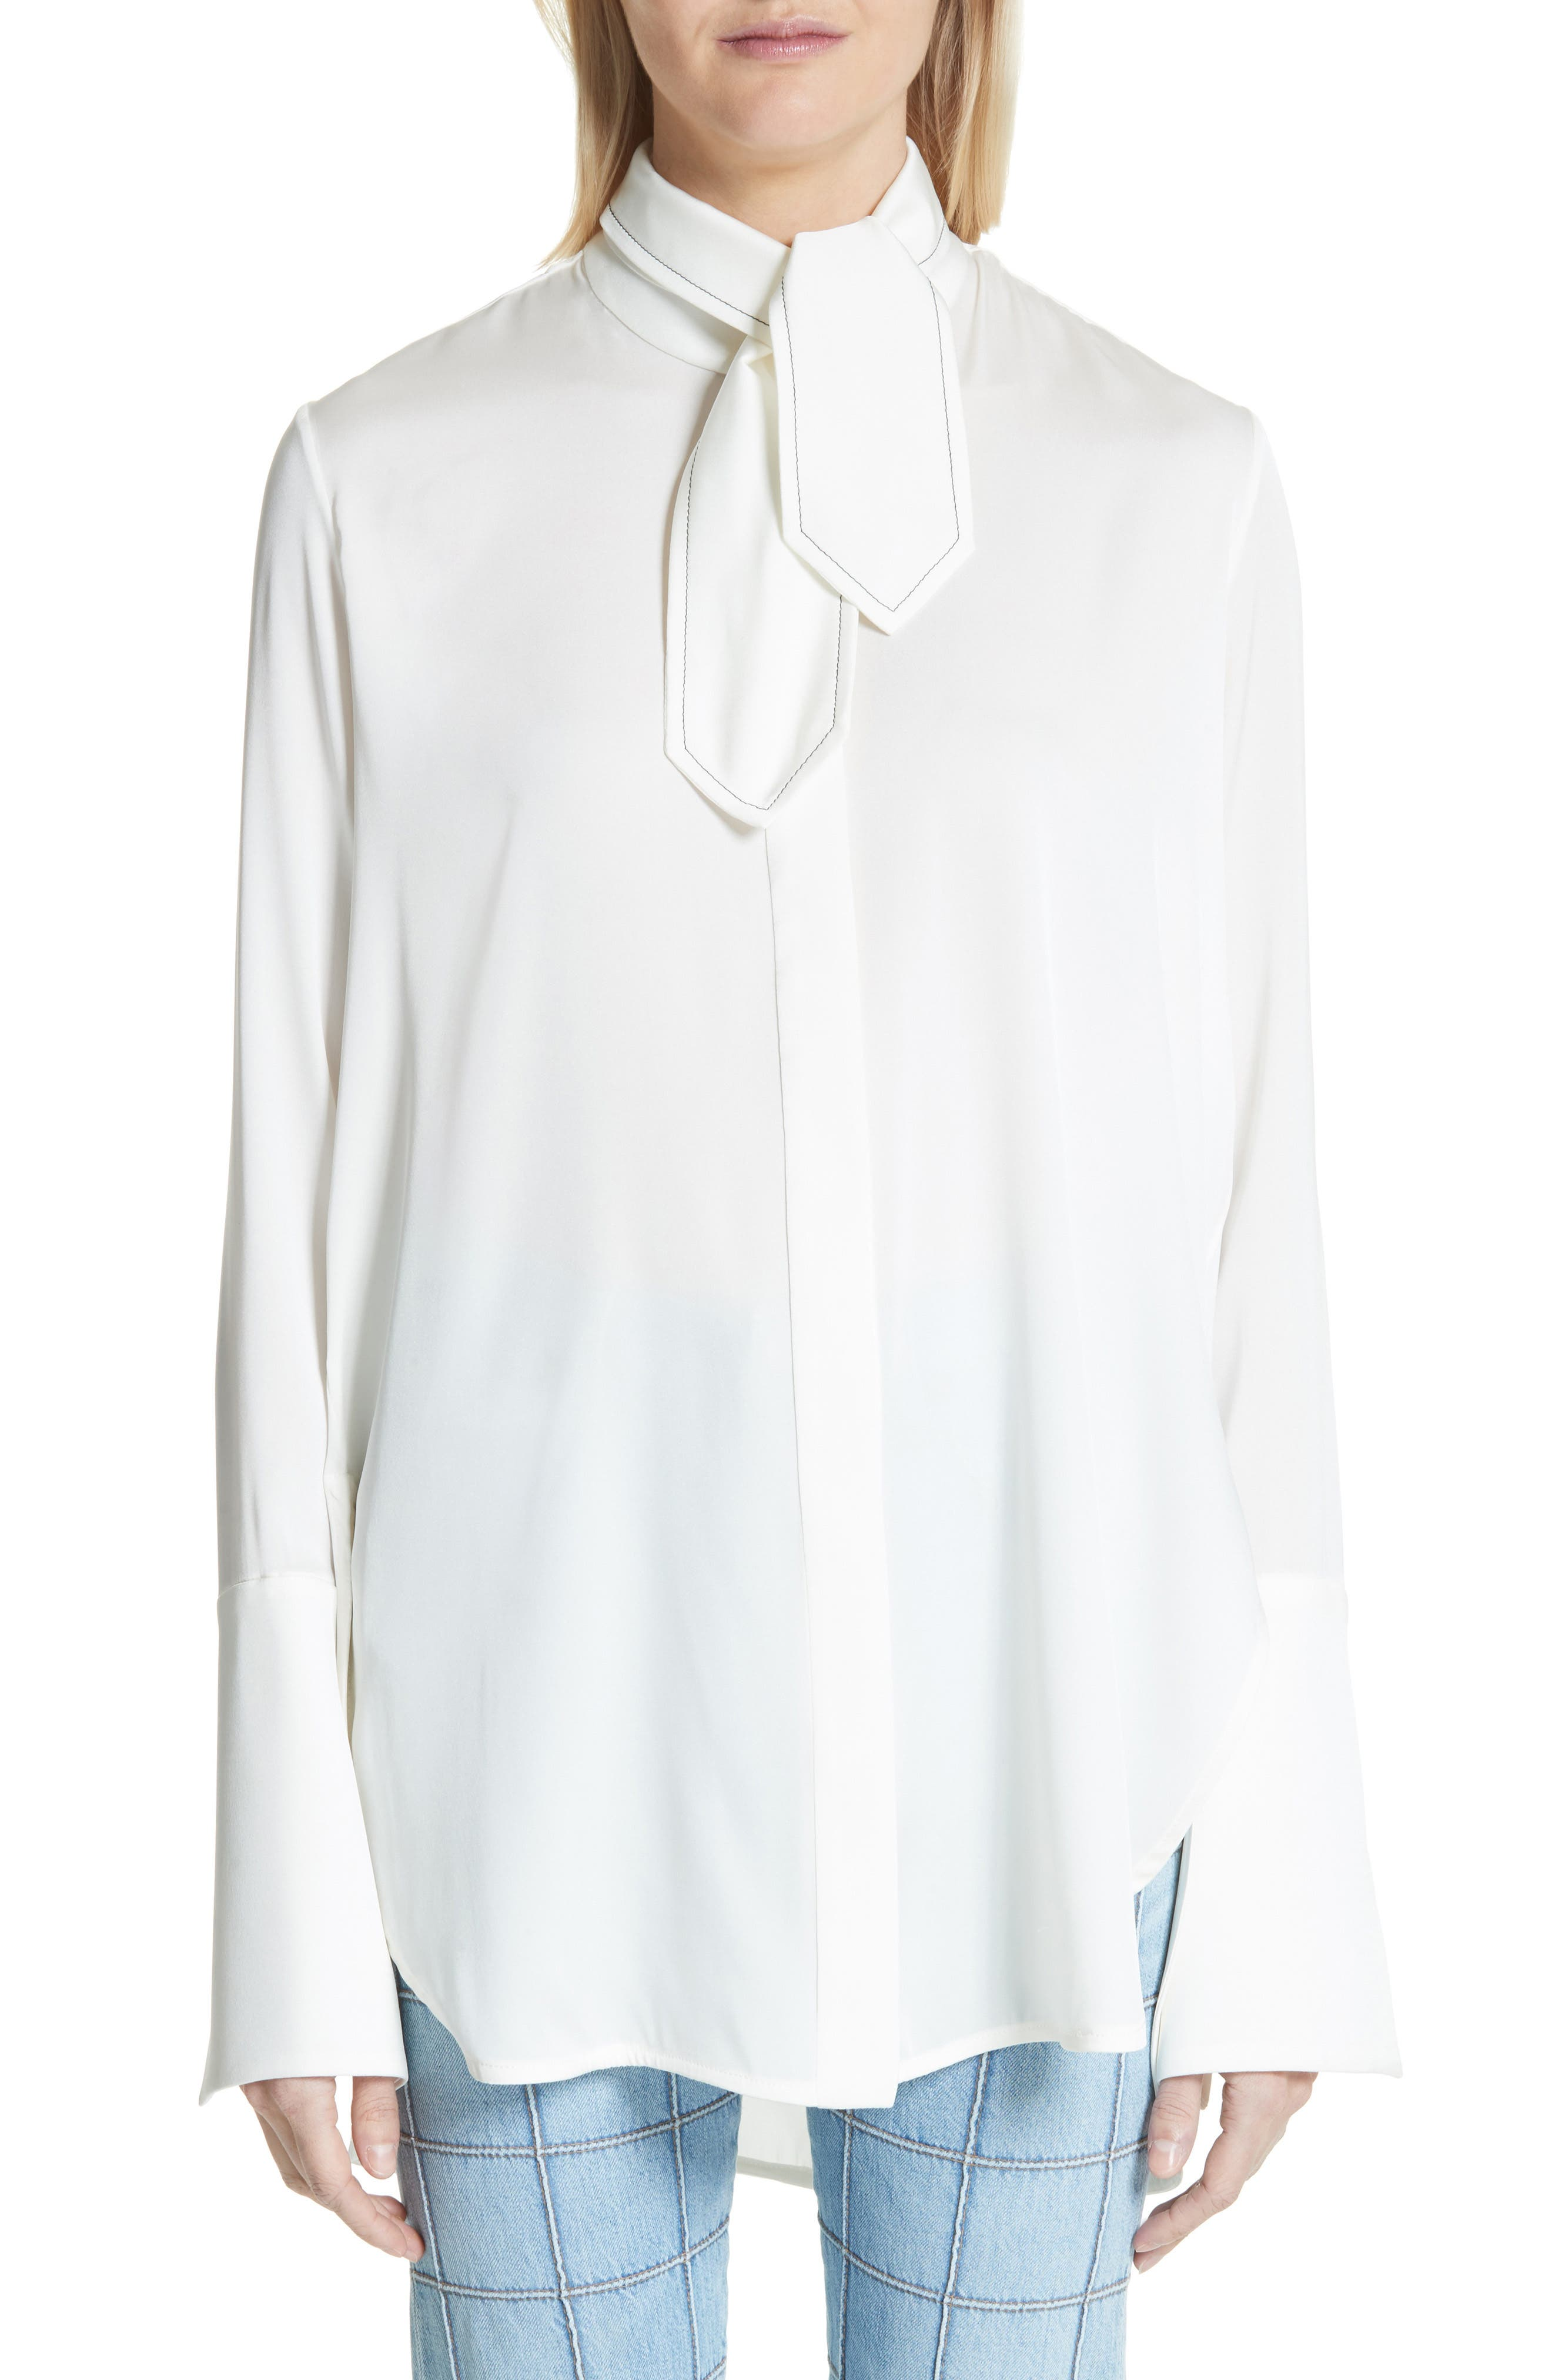 Ride Lonesome Tie Neck Blouse,                         Main,                         color, Ivory